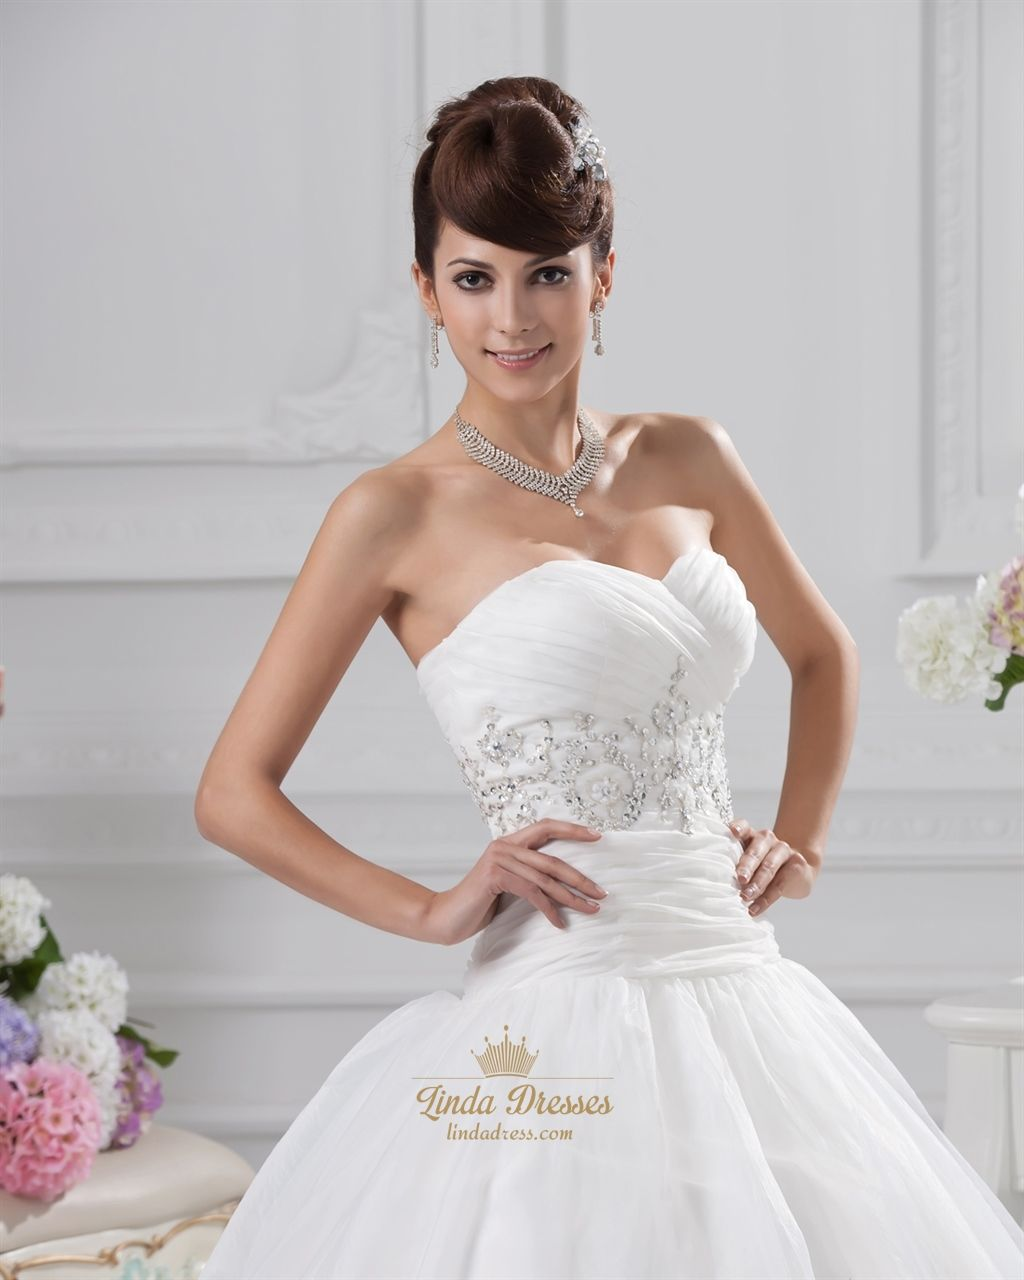 Wedding dresses springfield mo  Ivory Wedding Dresses Sweetheart Neckline Princess With Gold